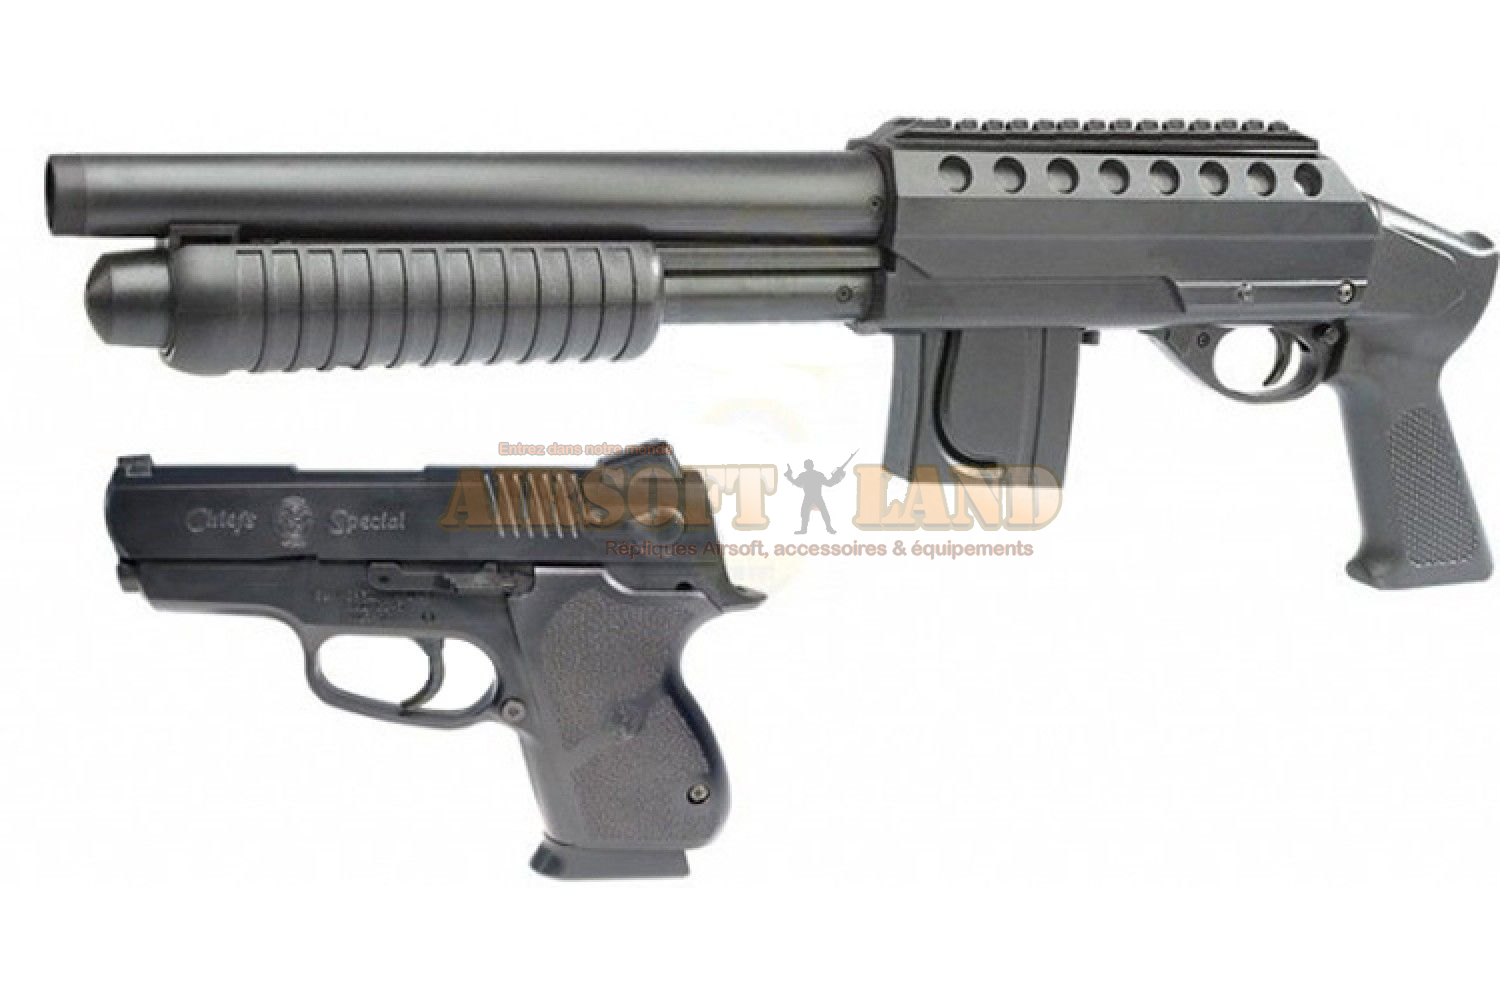 Mossberg tactical kit shotgun + pistol